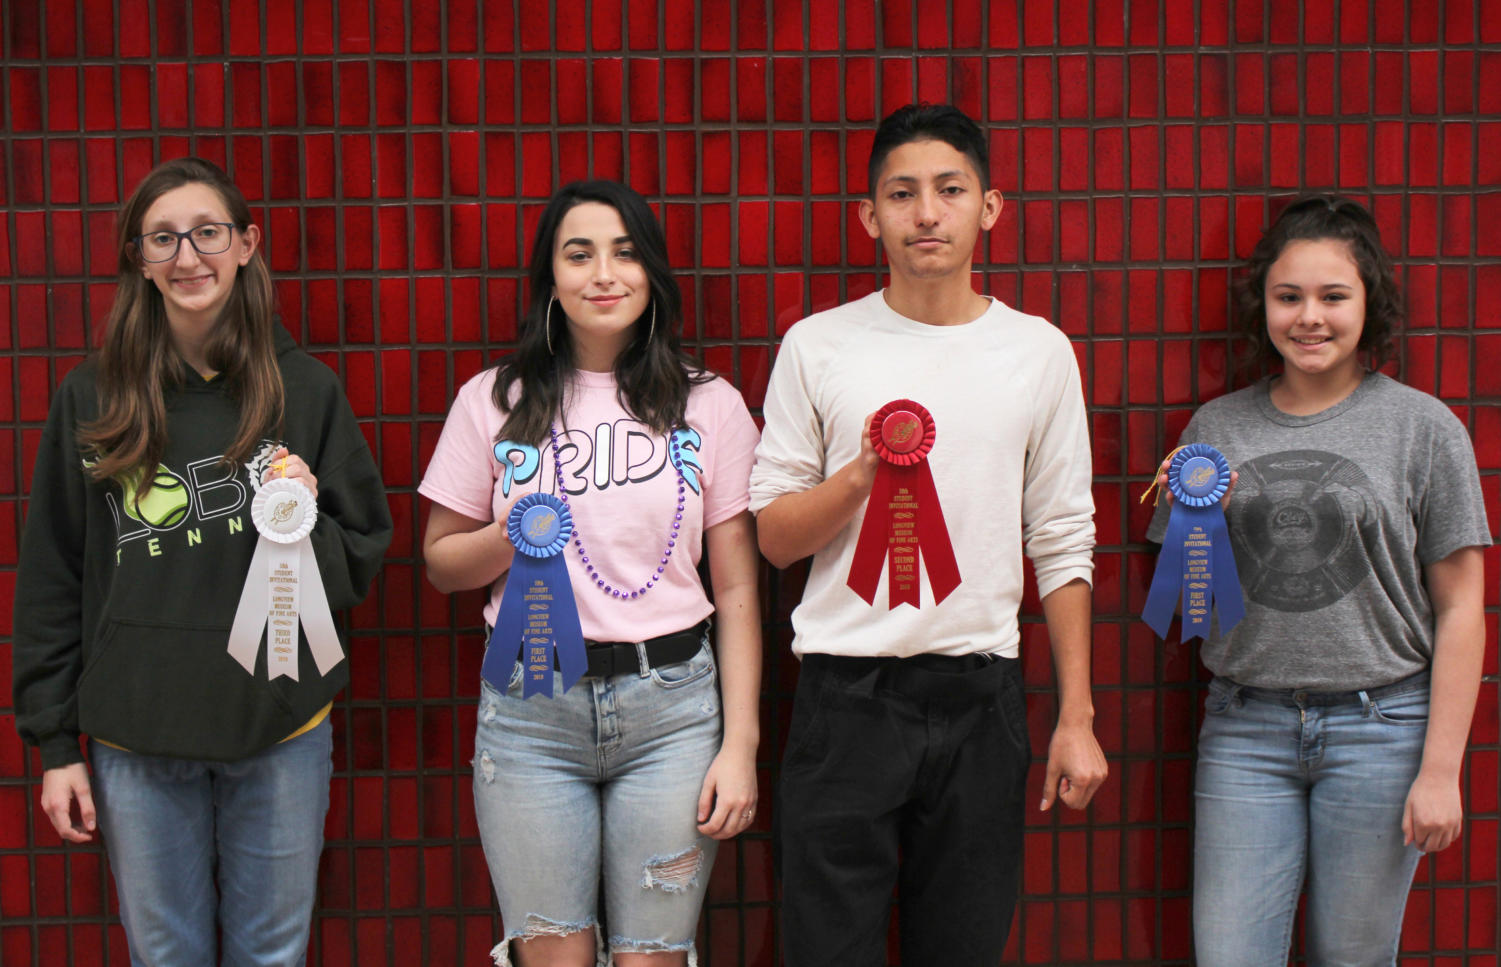 left to right: Sarah Webb, Ariel Swanson, Jorge Santiago, Jade Smith